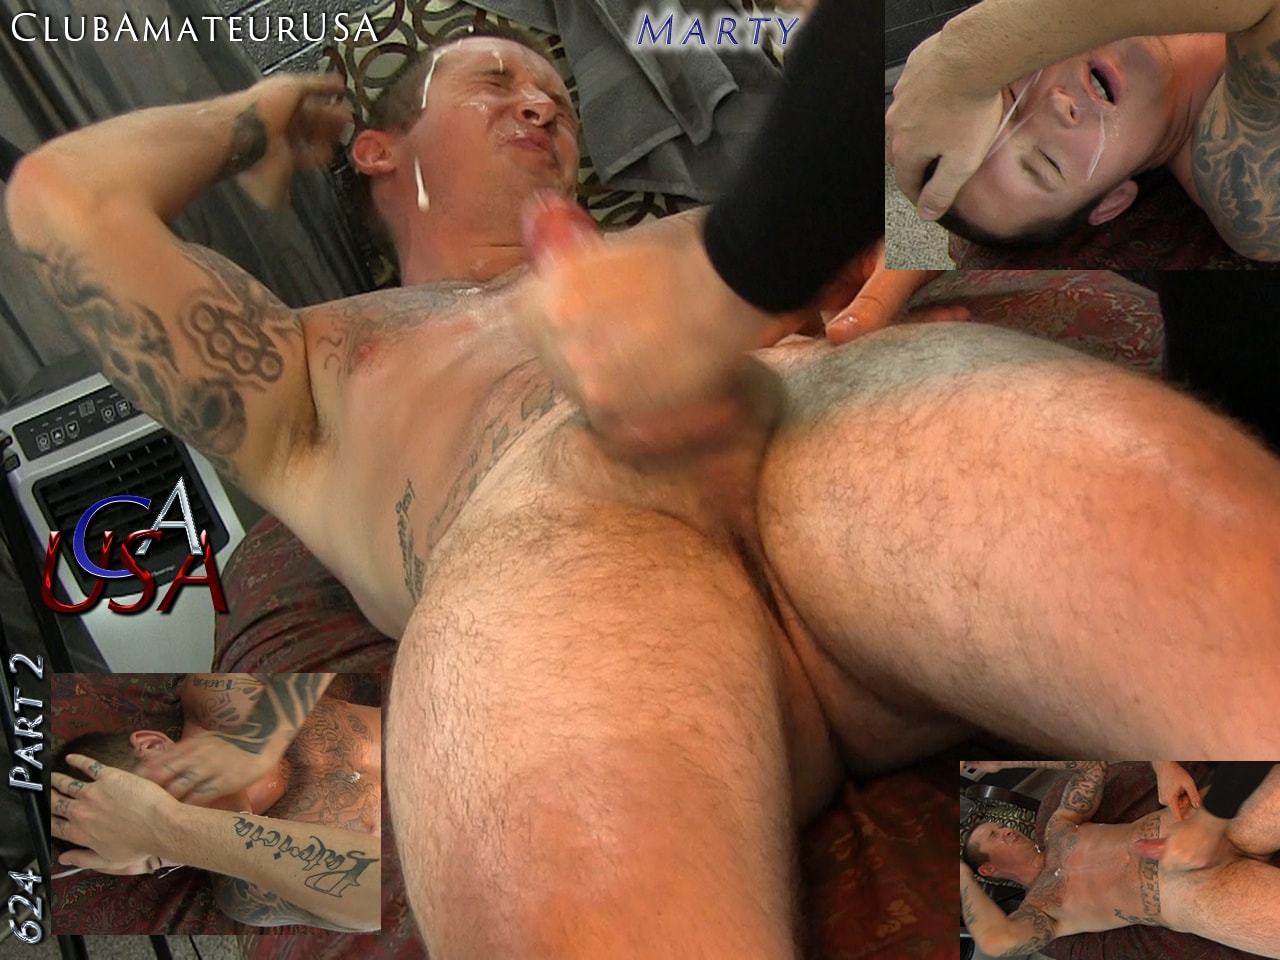 Download or Stream CAUSA 624 Marty - Part 2 - Click Here Now